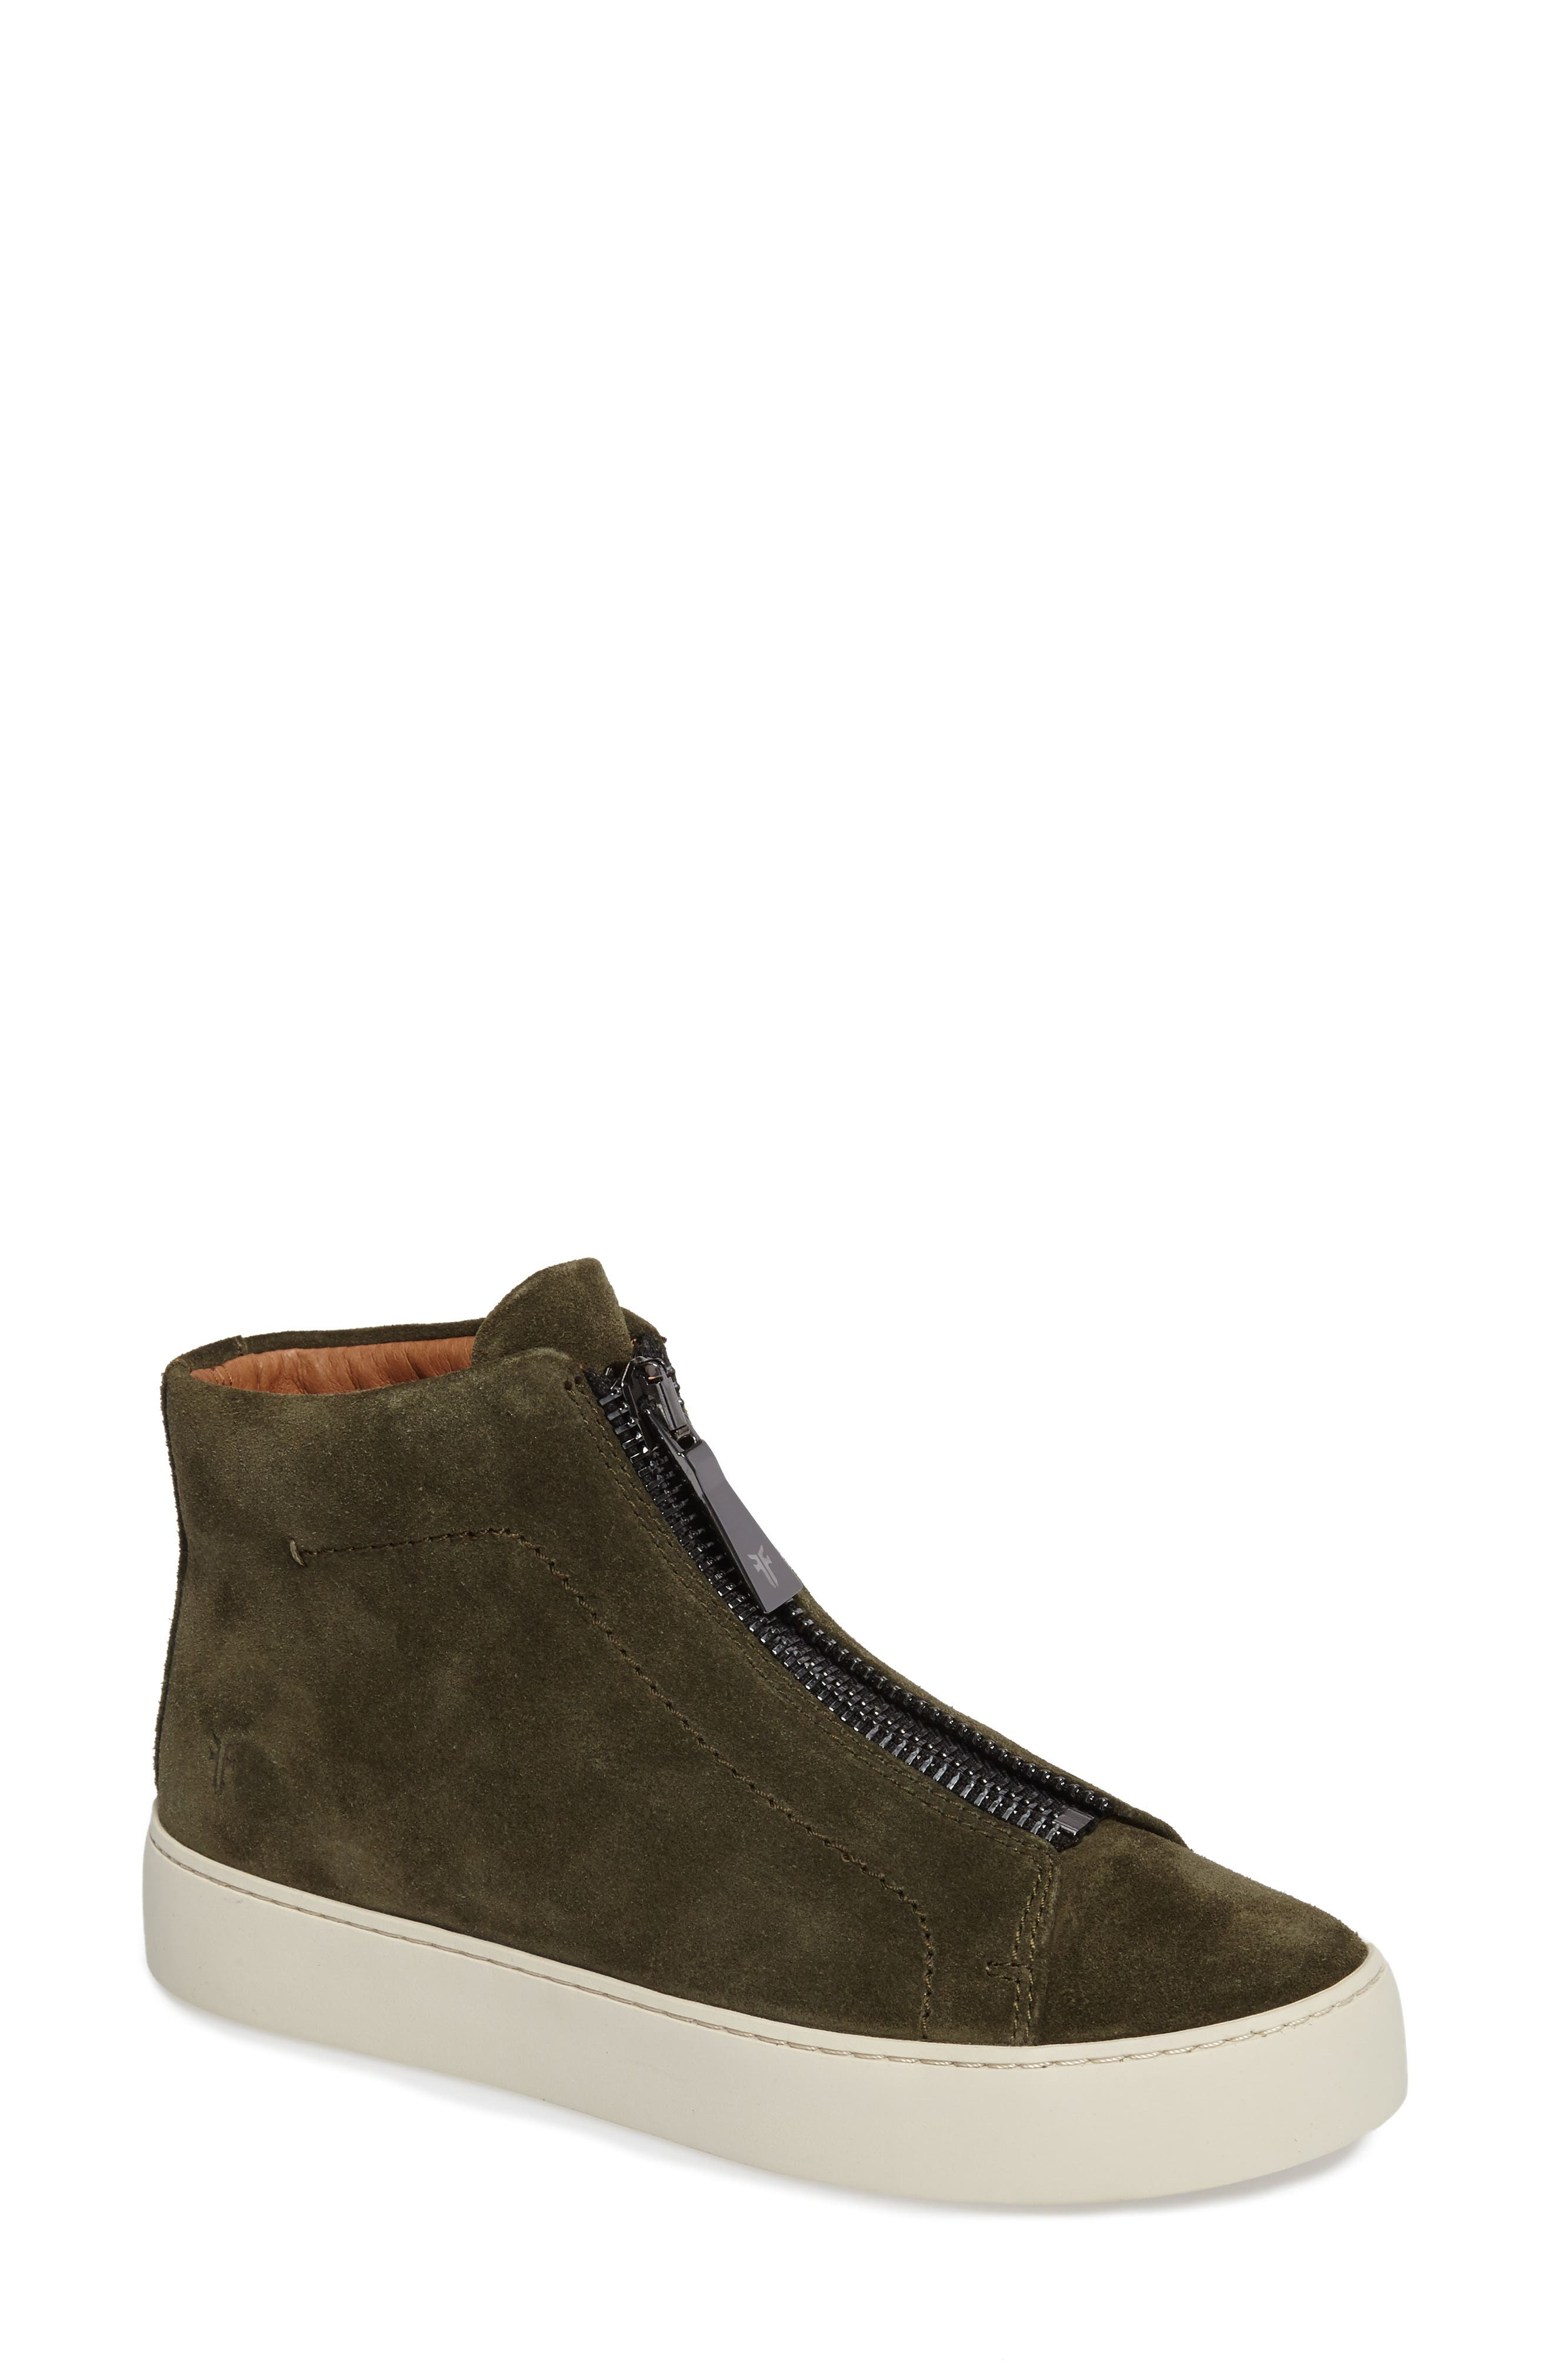 Lena Zip High Top Sneaker,                             Main thumbnail 1, color,                             Forest Suede